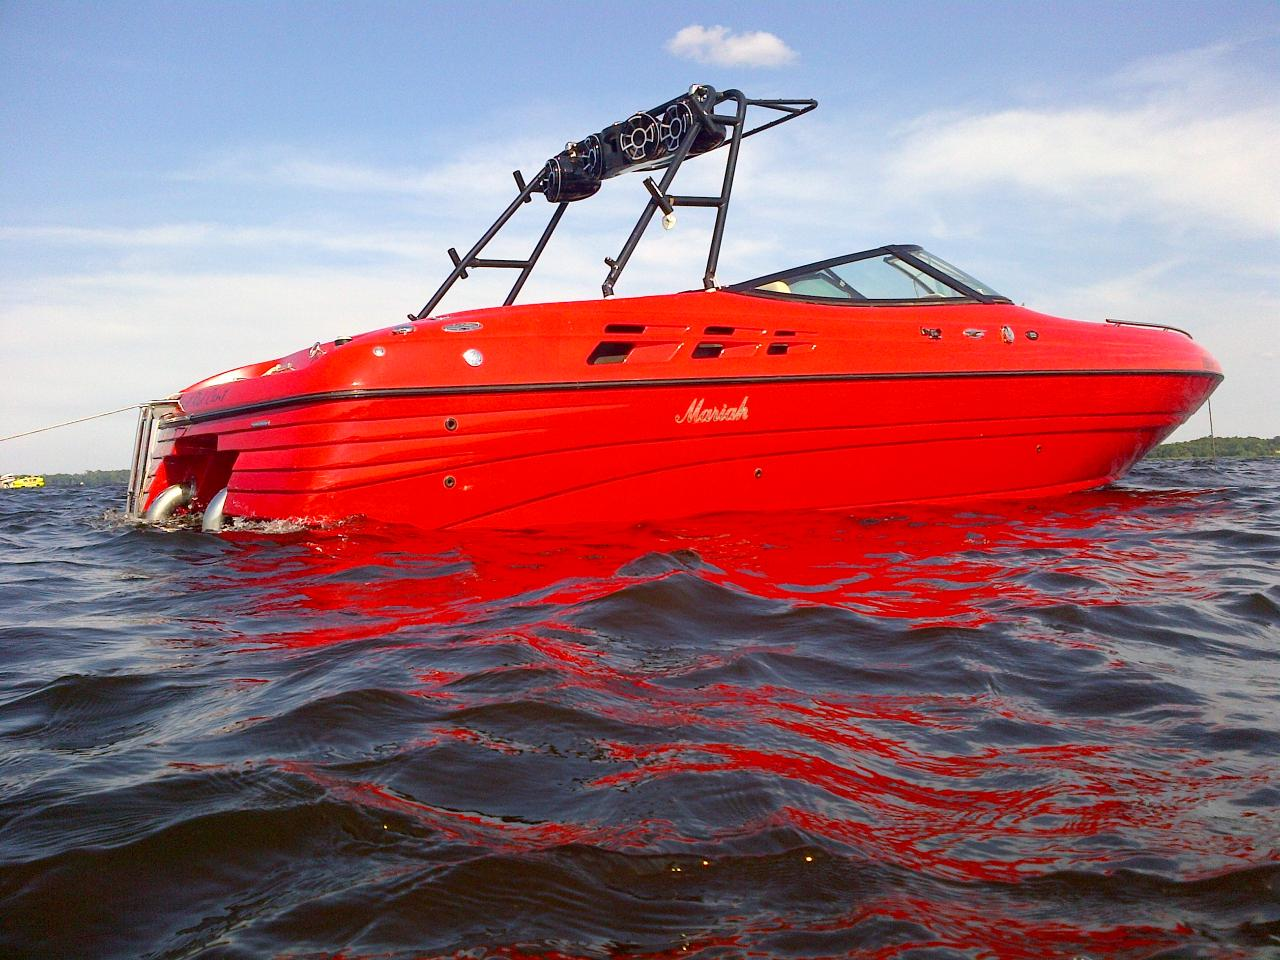 6196d1436306568 last red cent 1999 z302 502 mpi bravo three viper red limited edition 5574d6c087a4dfefcdc55cede 100 [ mercruiser 502 mpi manual ] mercruiser application charts  at readyjetset.co